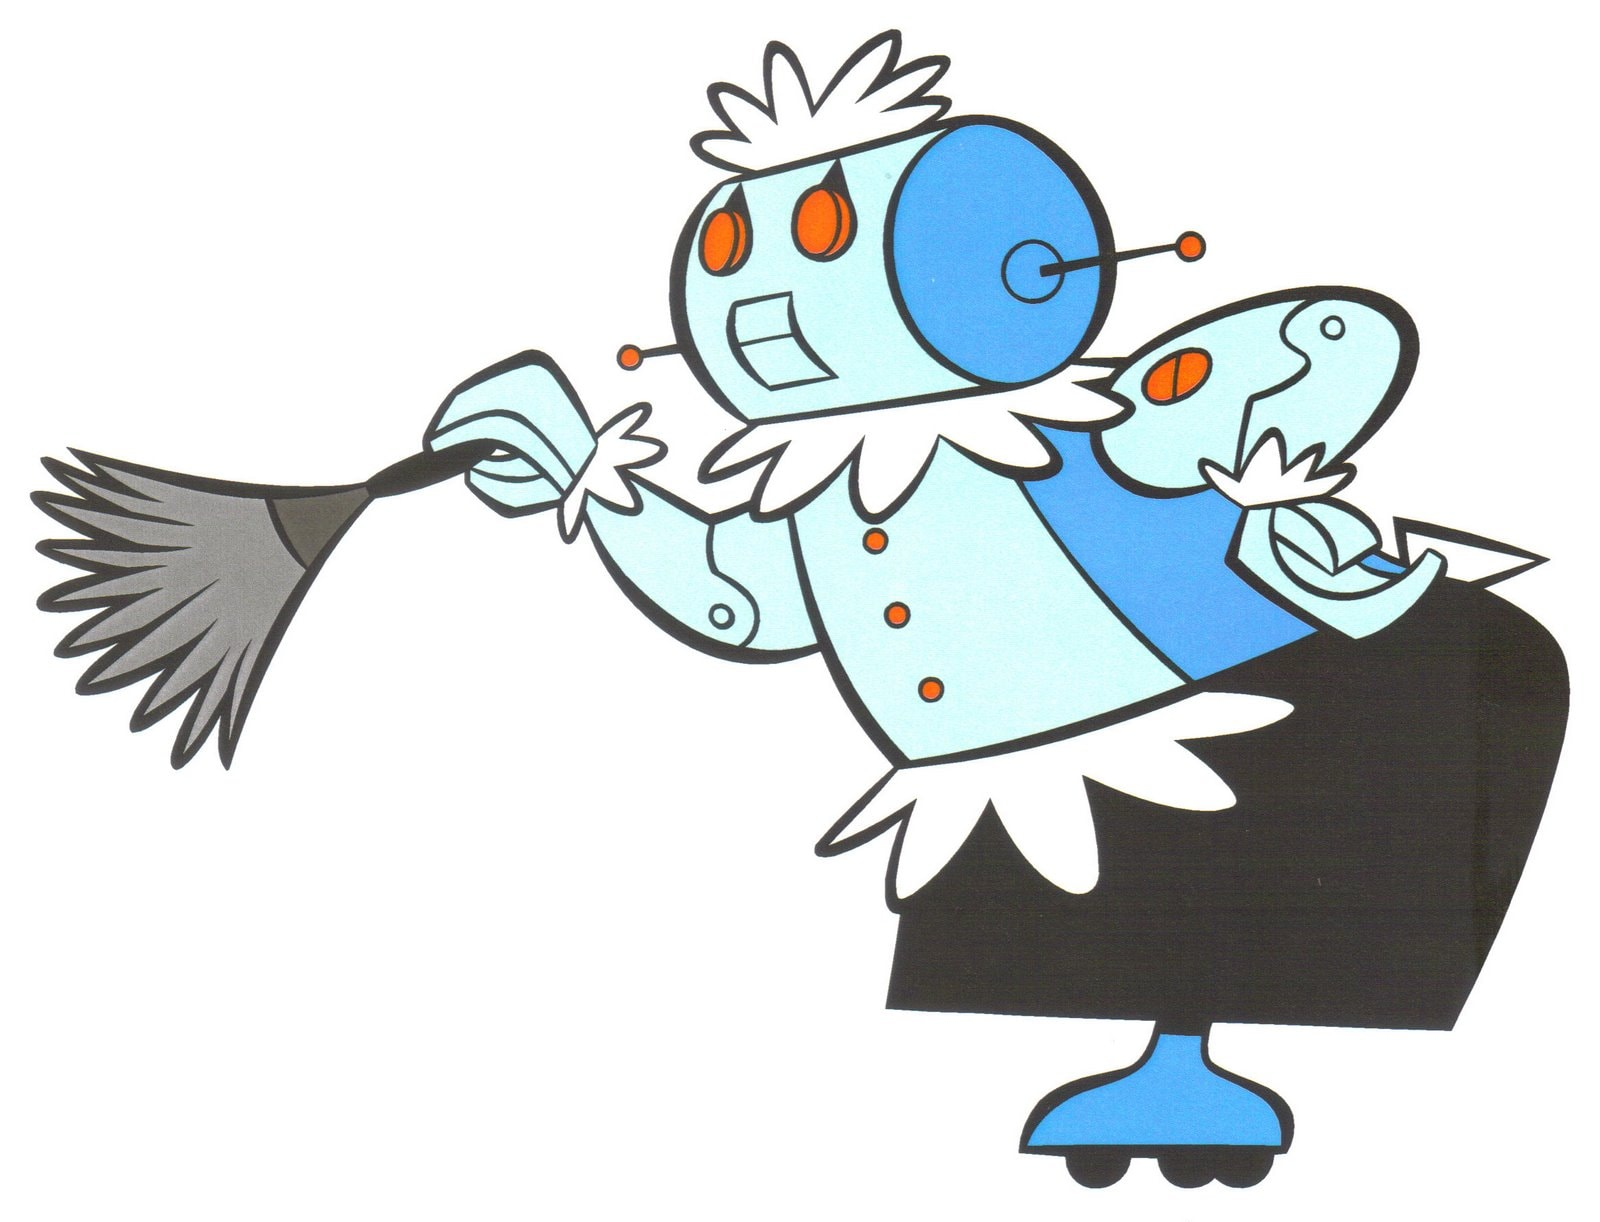 Rosey from The Jetsons (Hanna-Barbera Productions)